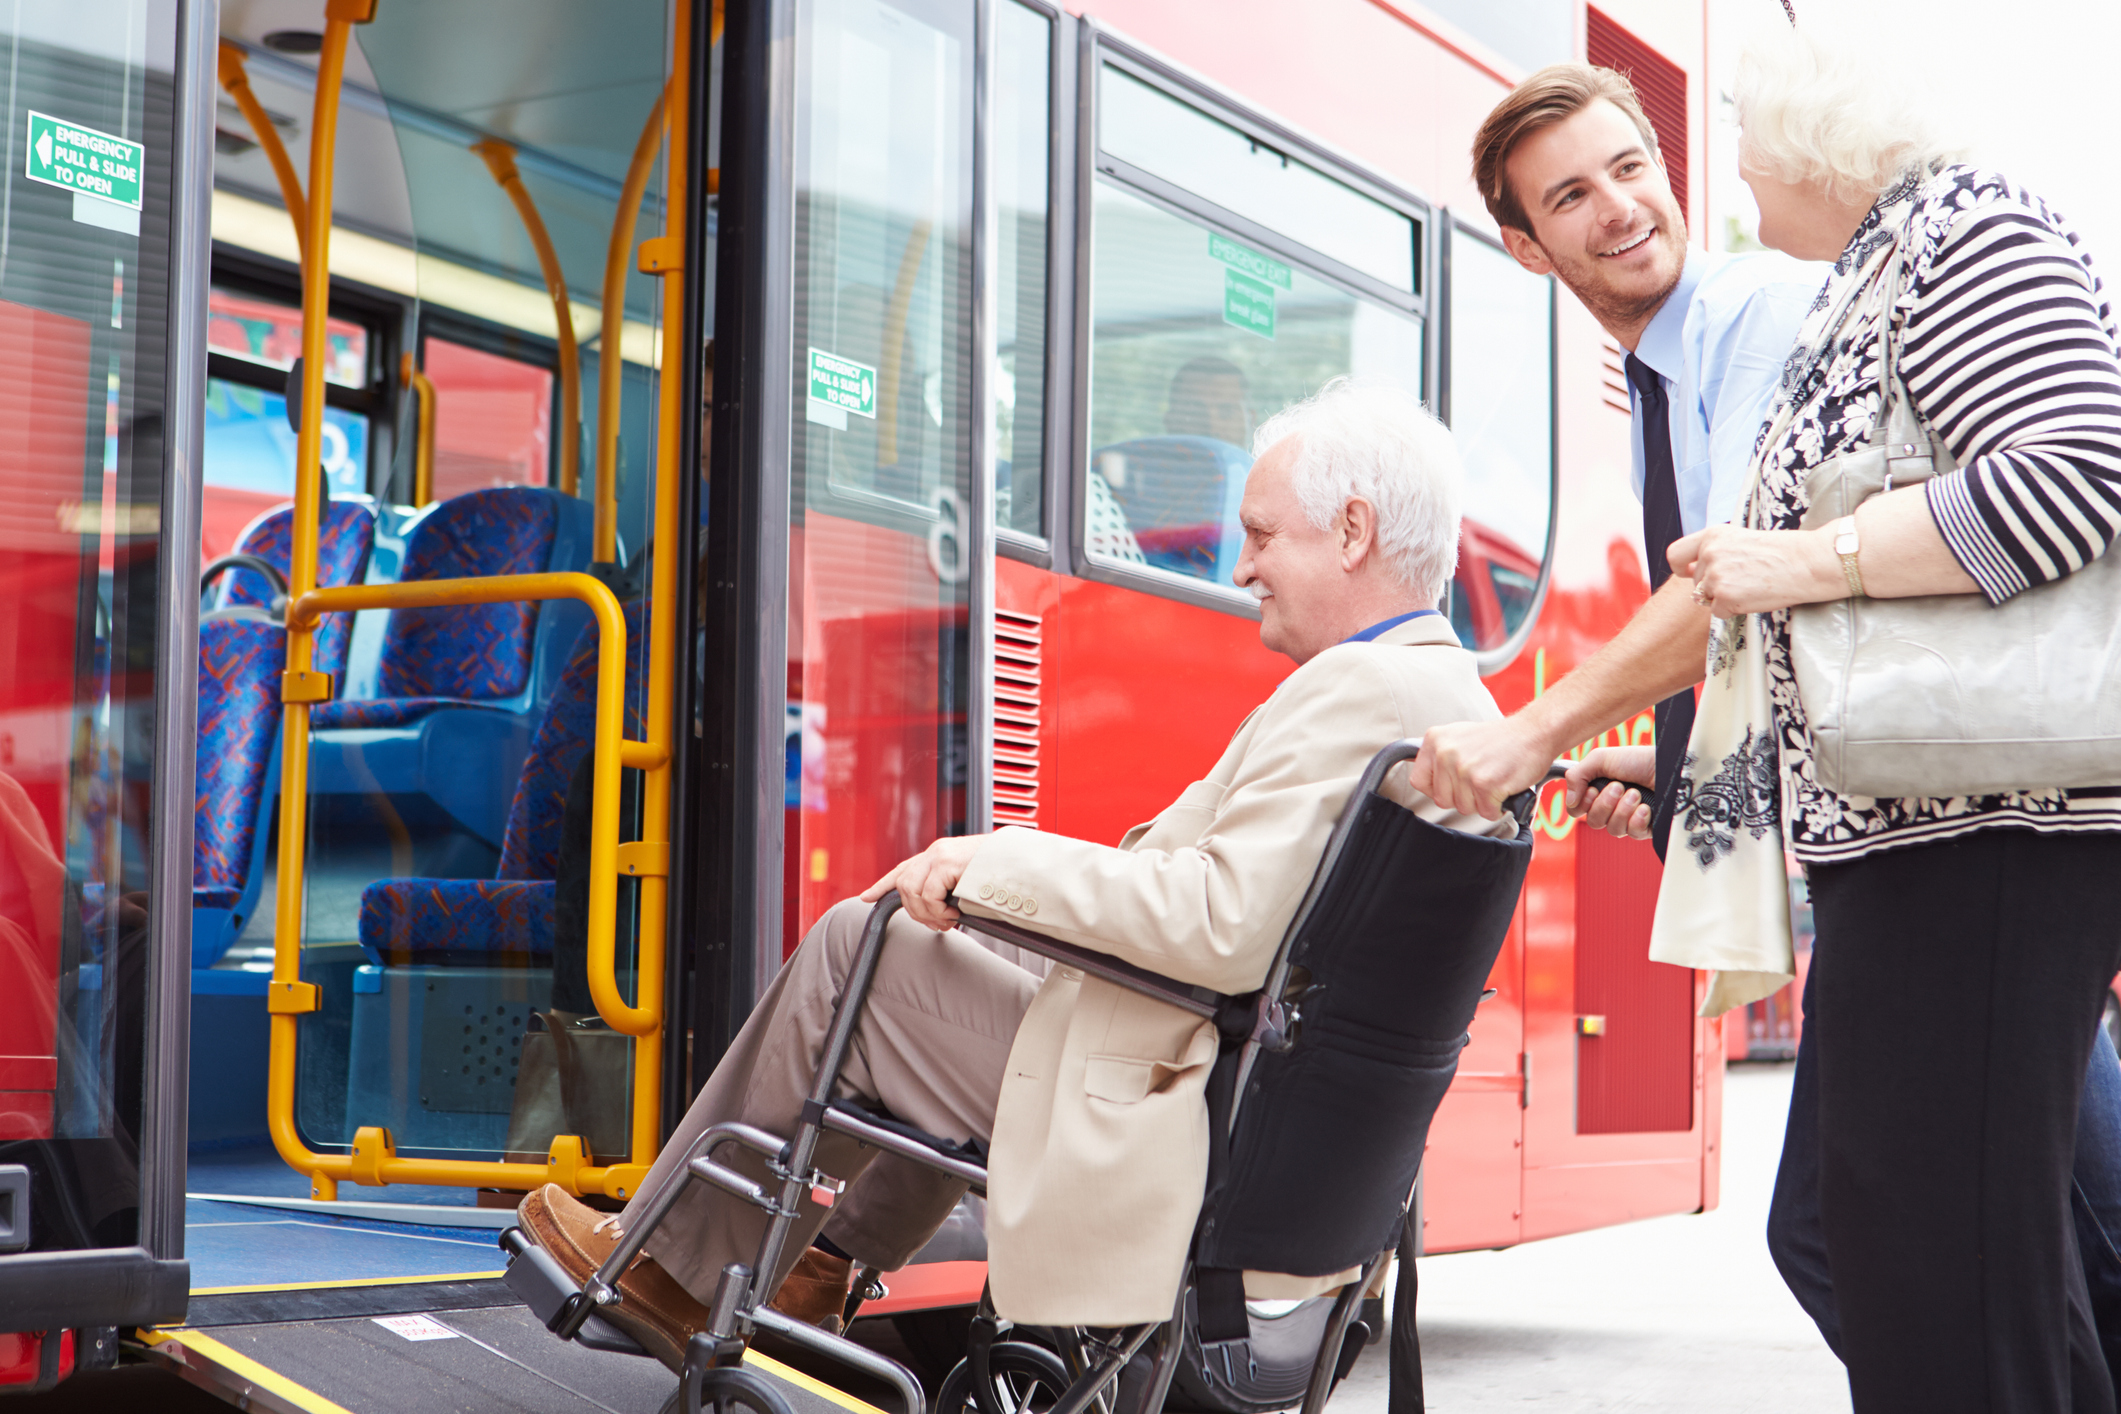 Elderly Couple Using Paratransit Services Booked with DRT Solution